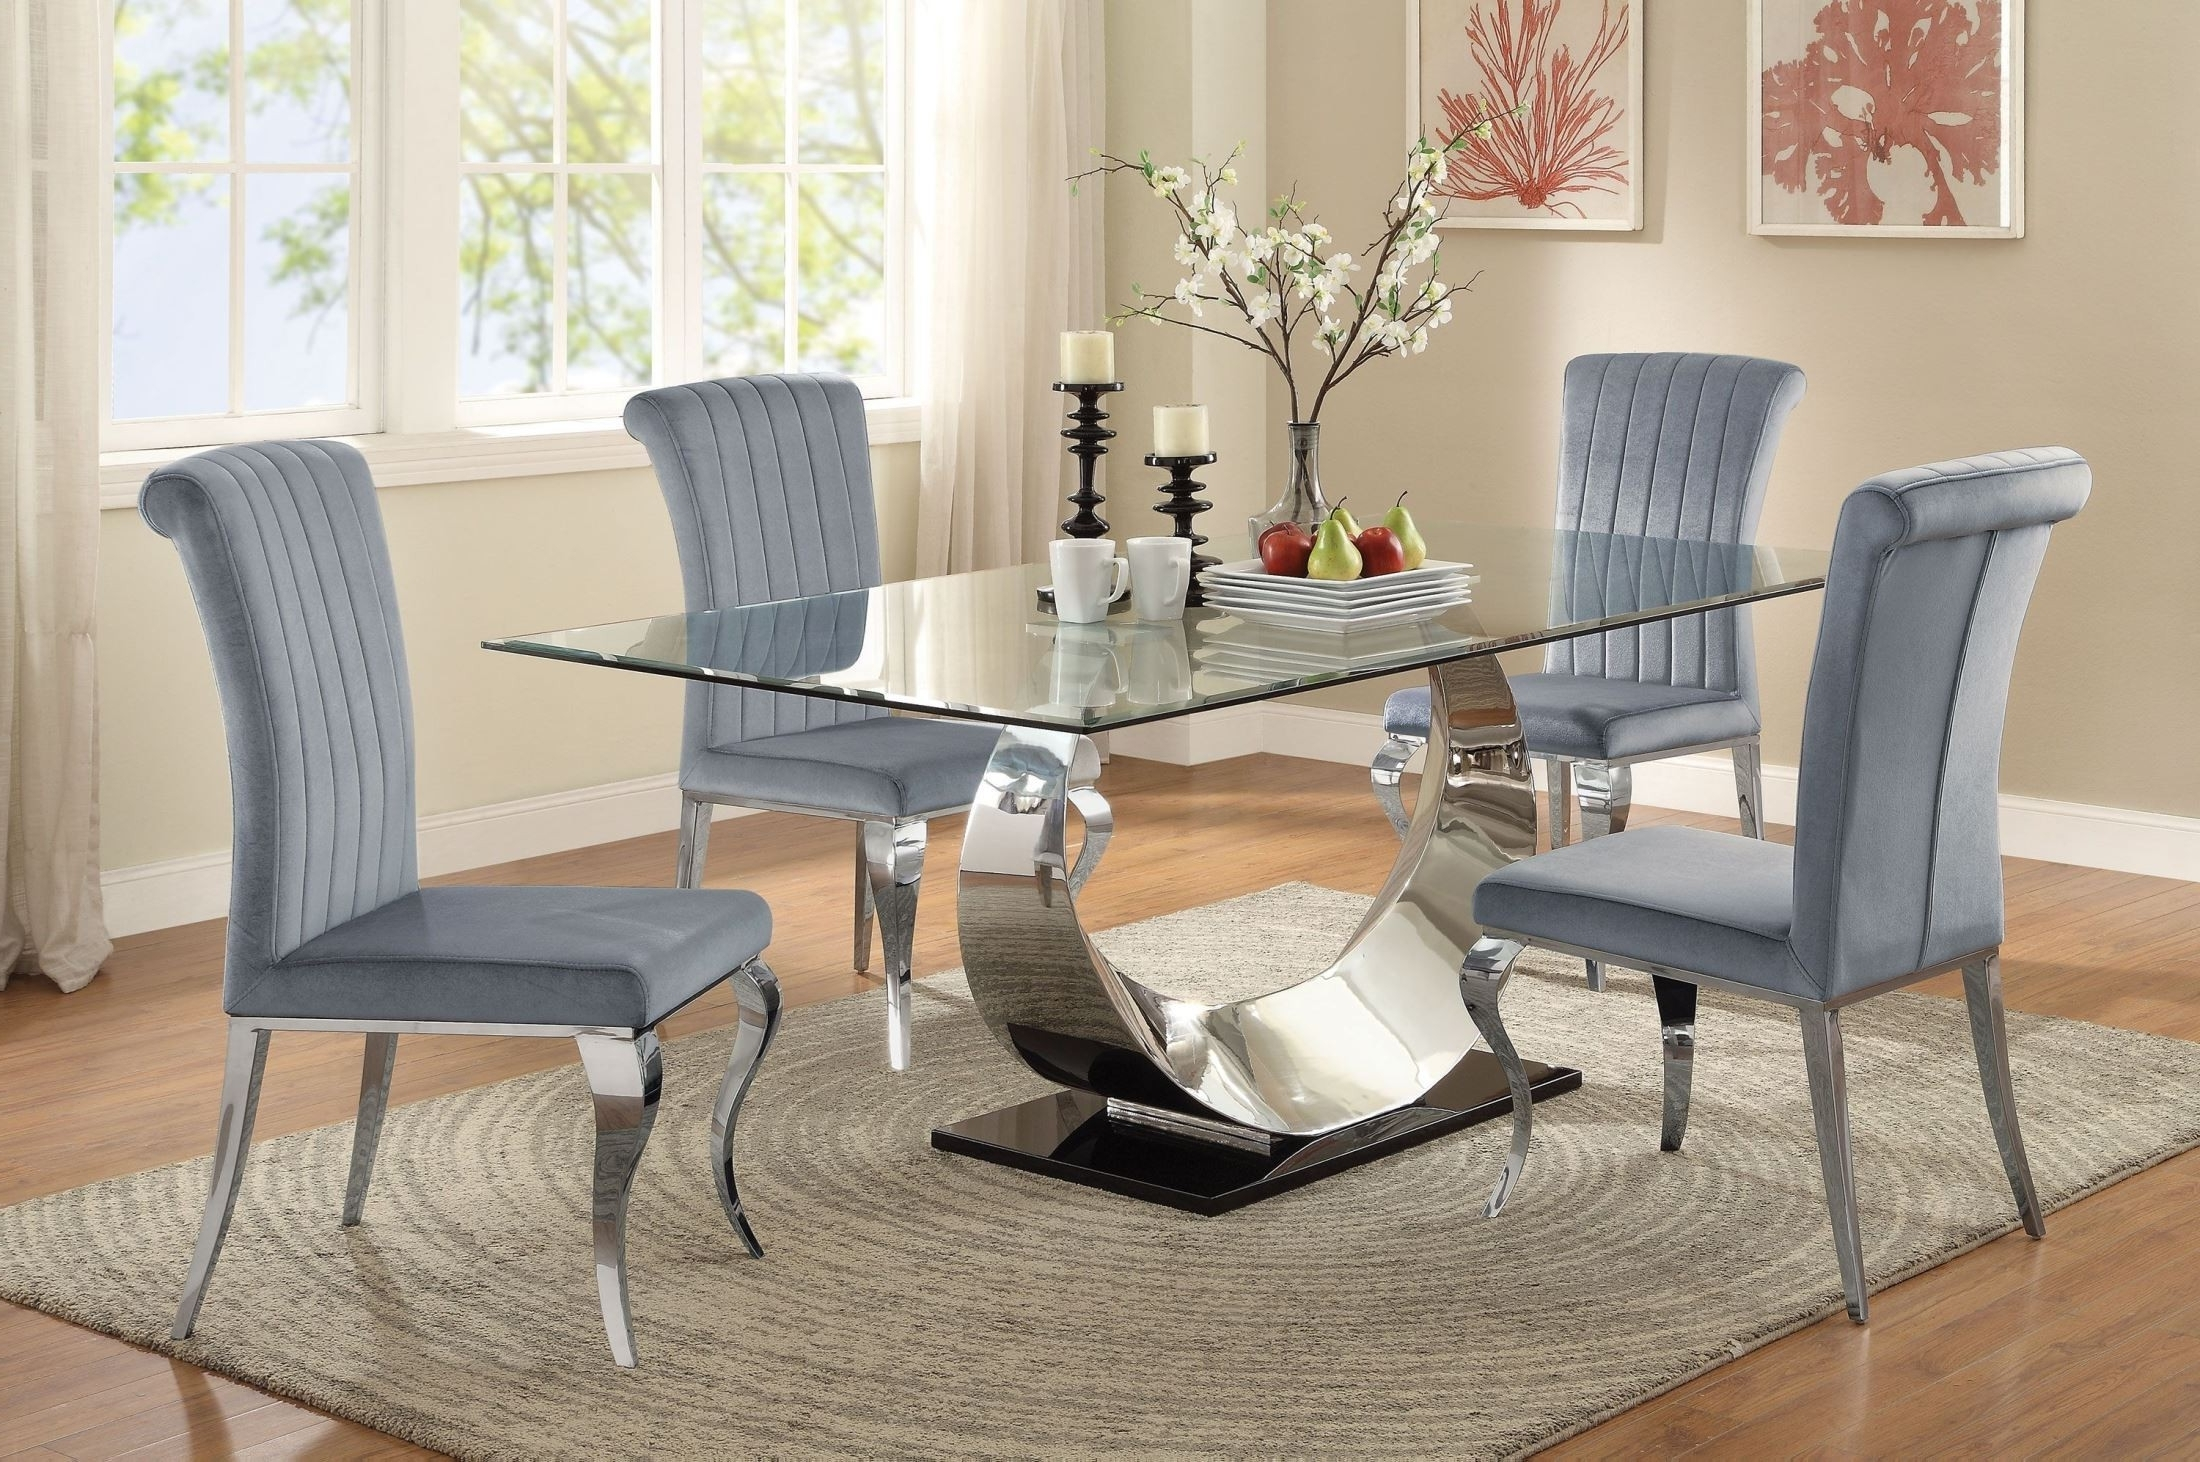 Chrome Dining Room Sets With Current Coaster Manessier Chrome Dining Room Set – Manessier Collection: (View 3 of 25)